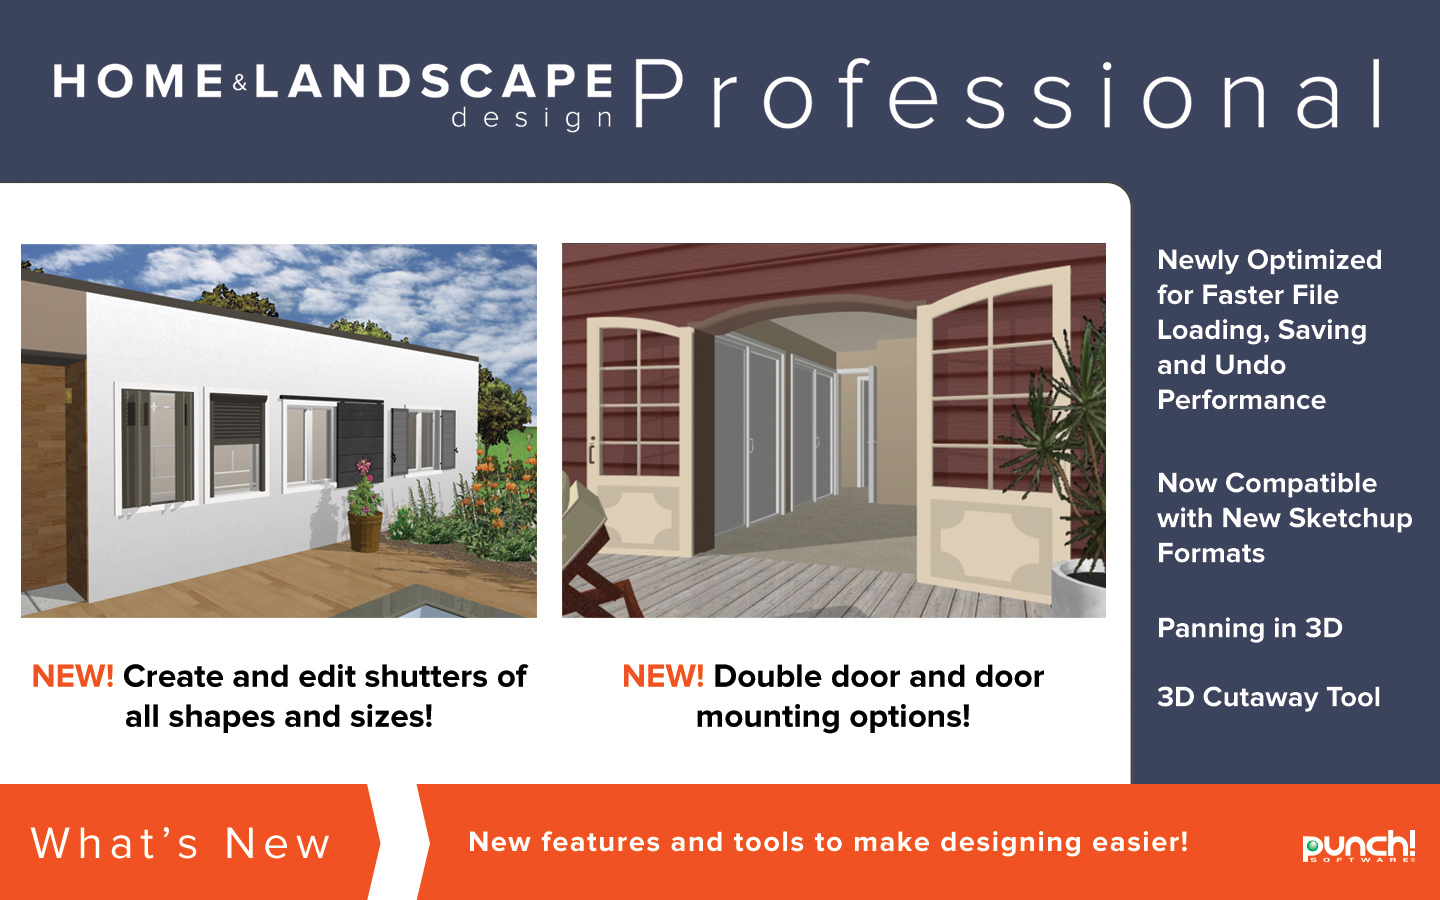 Punch home landscape design professional v19 home Professional interior design software